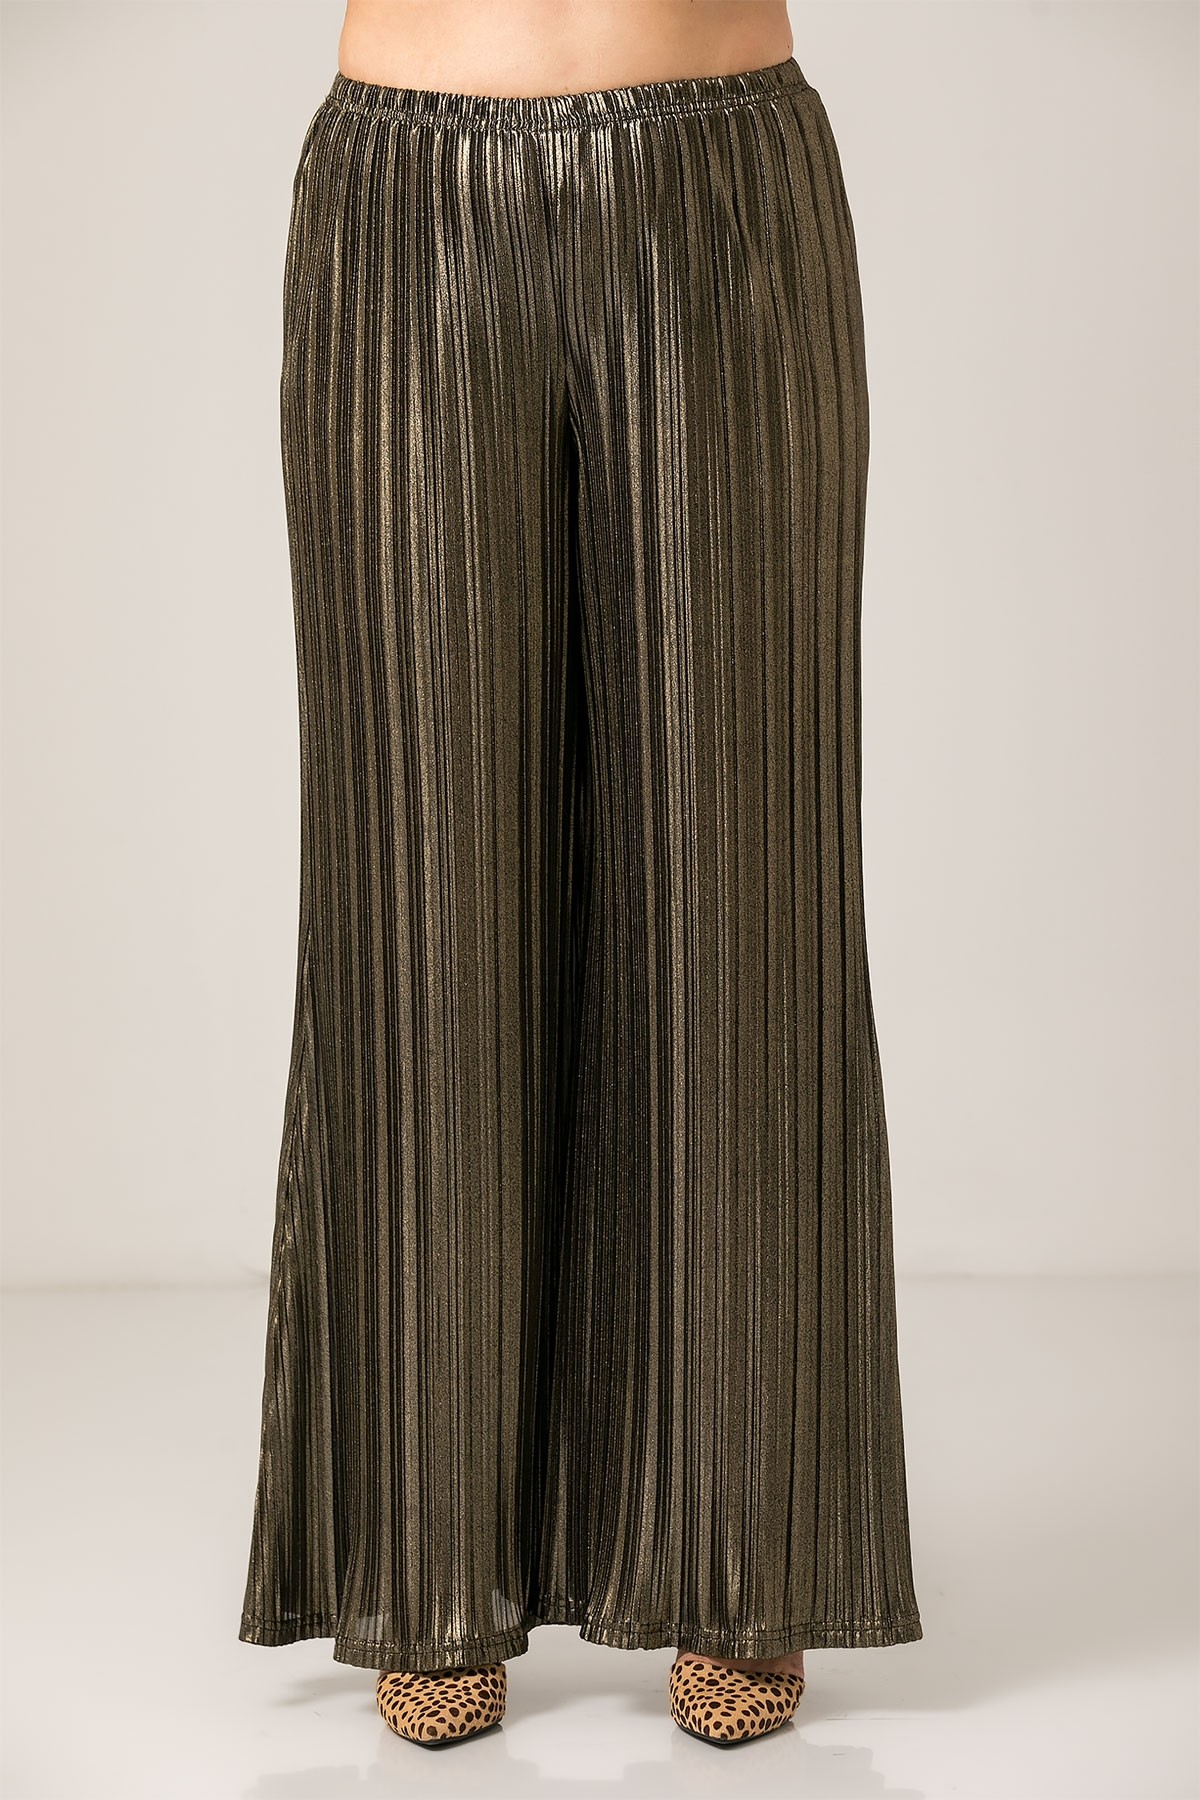 GOLD METALLIC PLEATED WIDE LEG TROUSERS